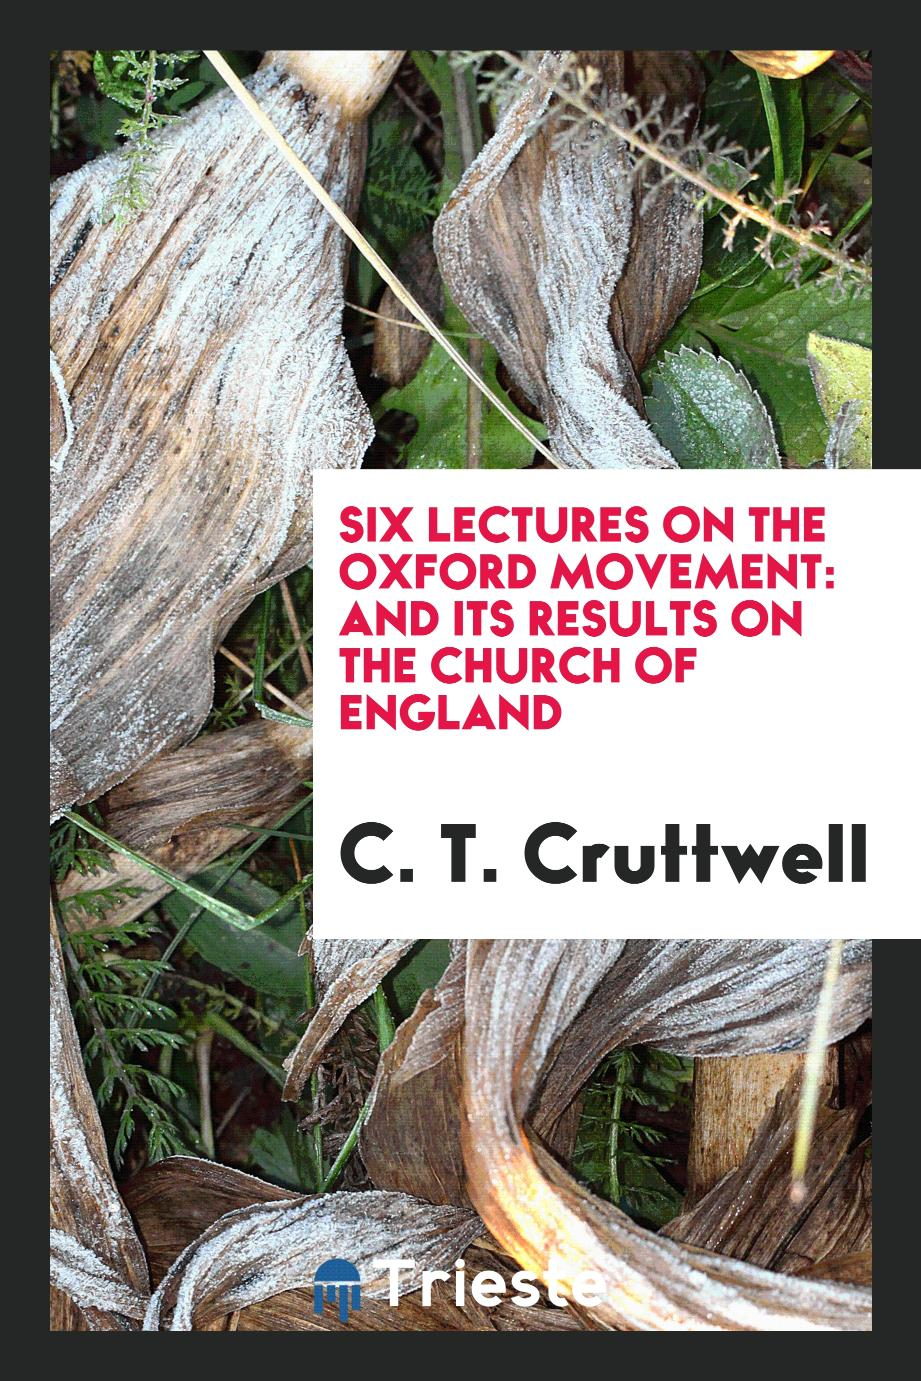 Six lectures on the Oxford movement: and its results on the Church of England